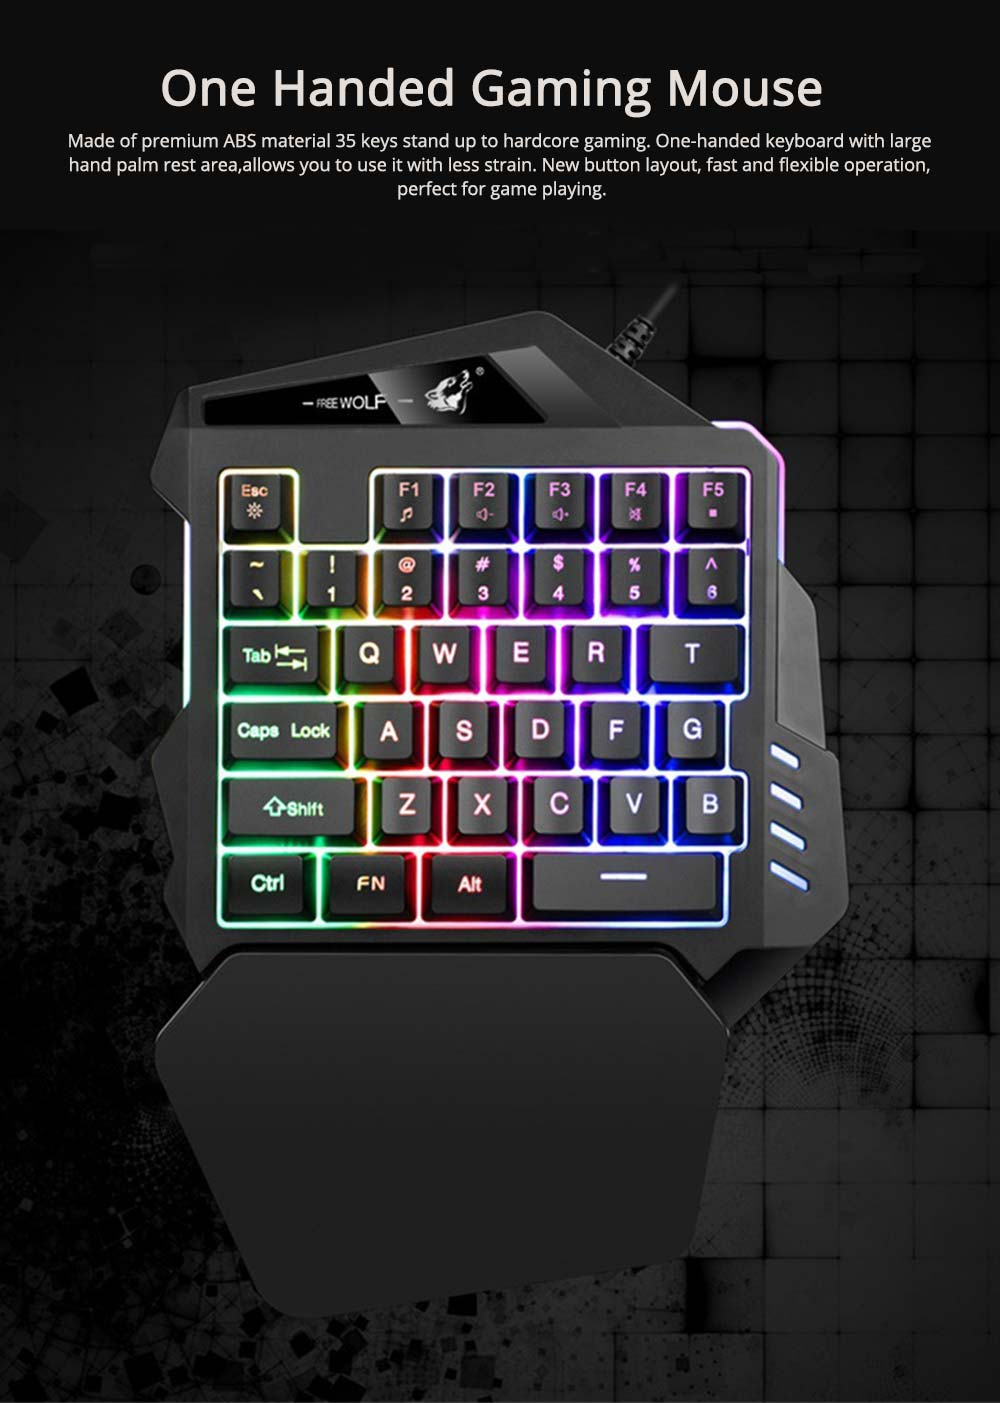 One-Handed Gaming Keyboard, K13 Wired 35 Keys LED Backlit USB Ergonomic Single Hand Keypad 0